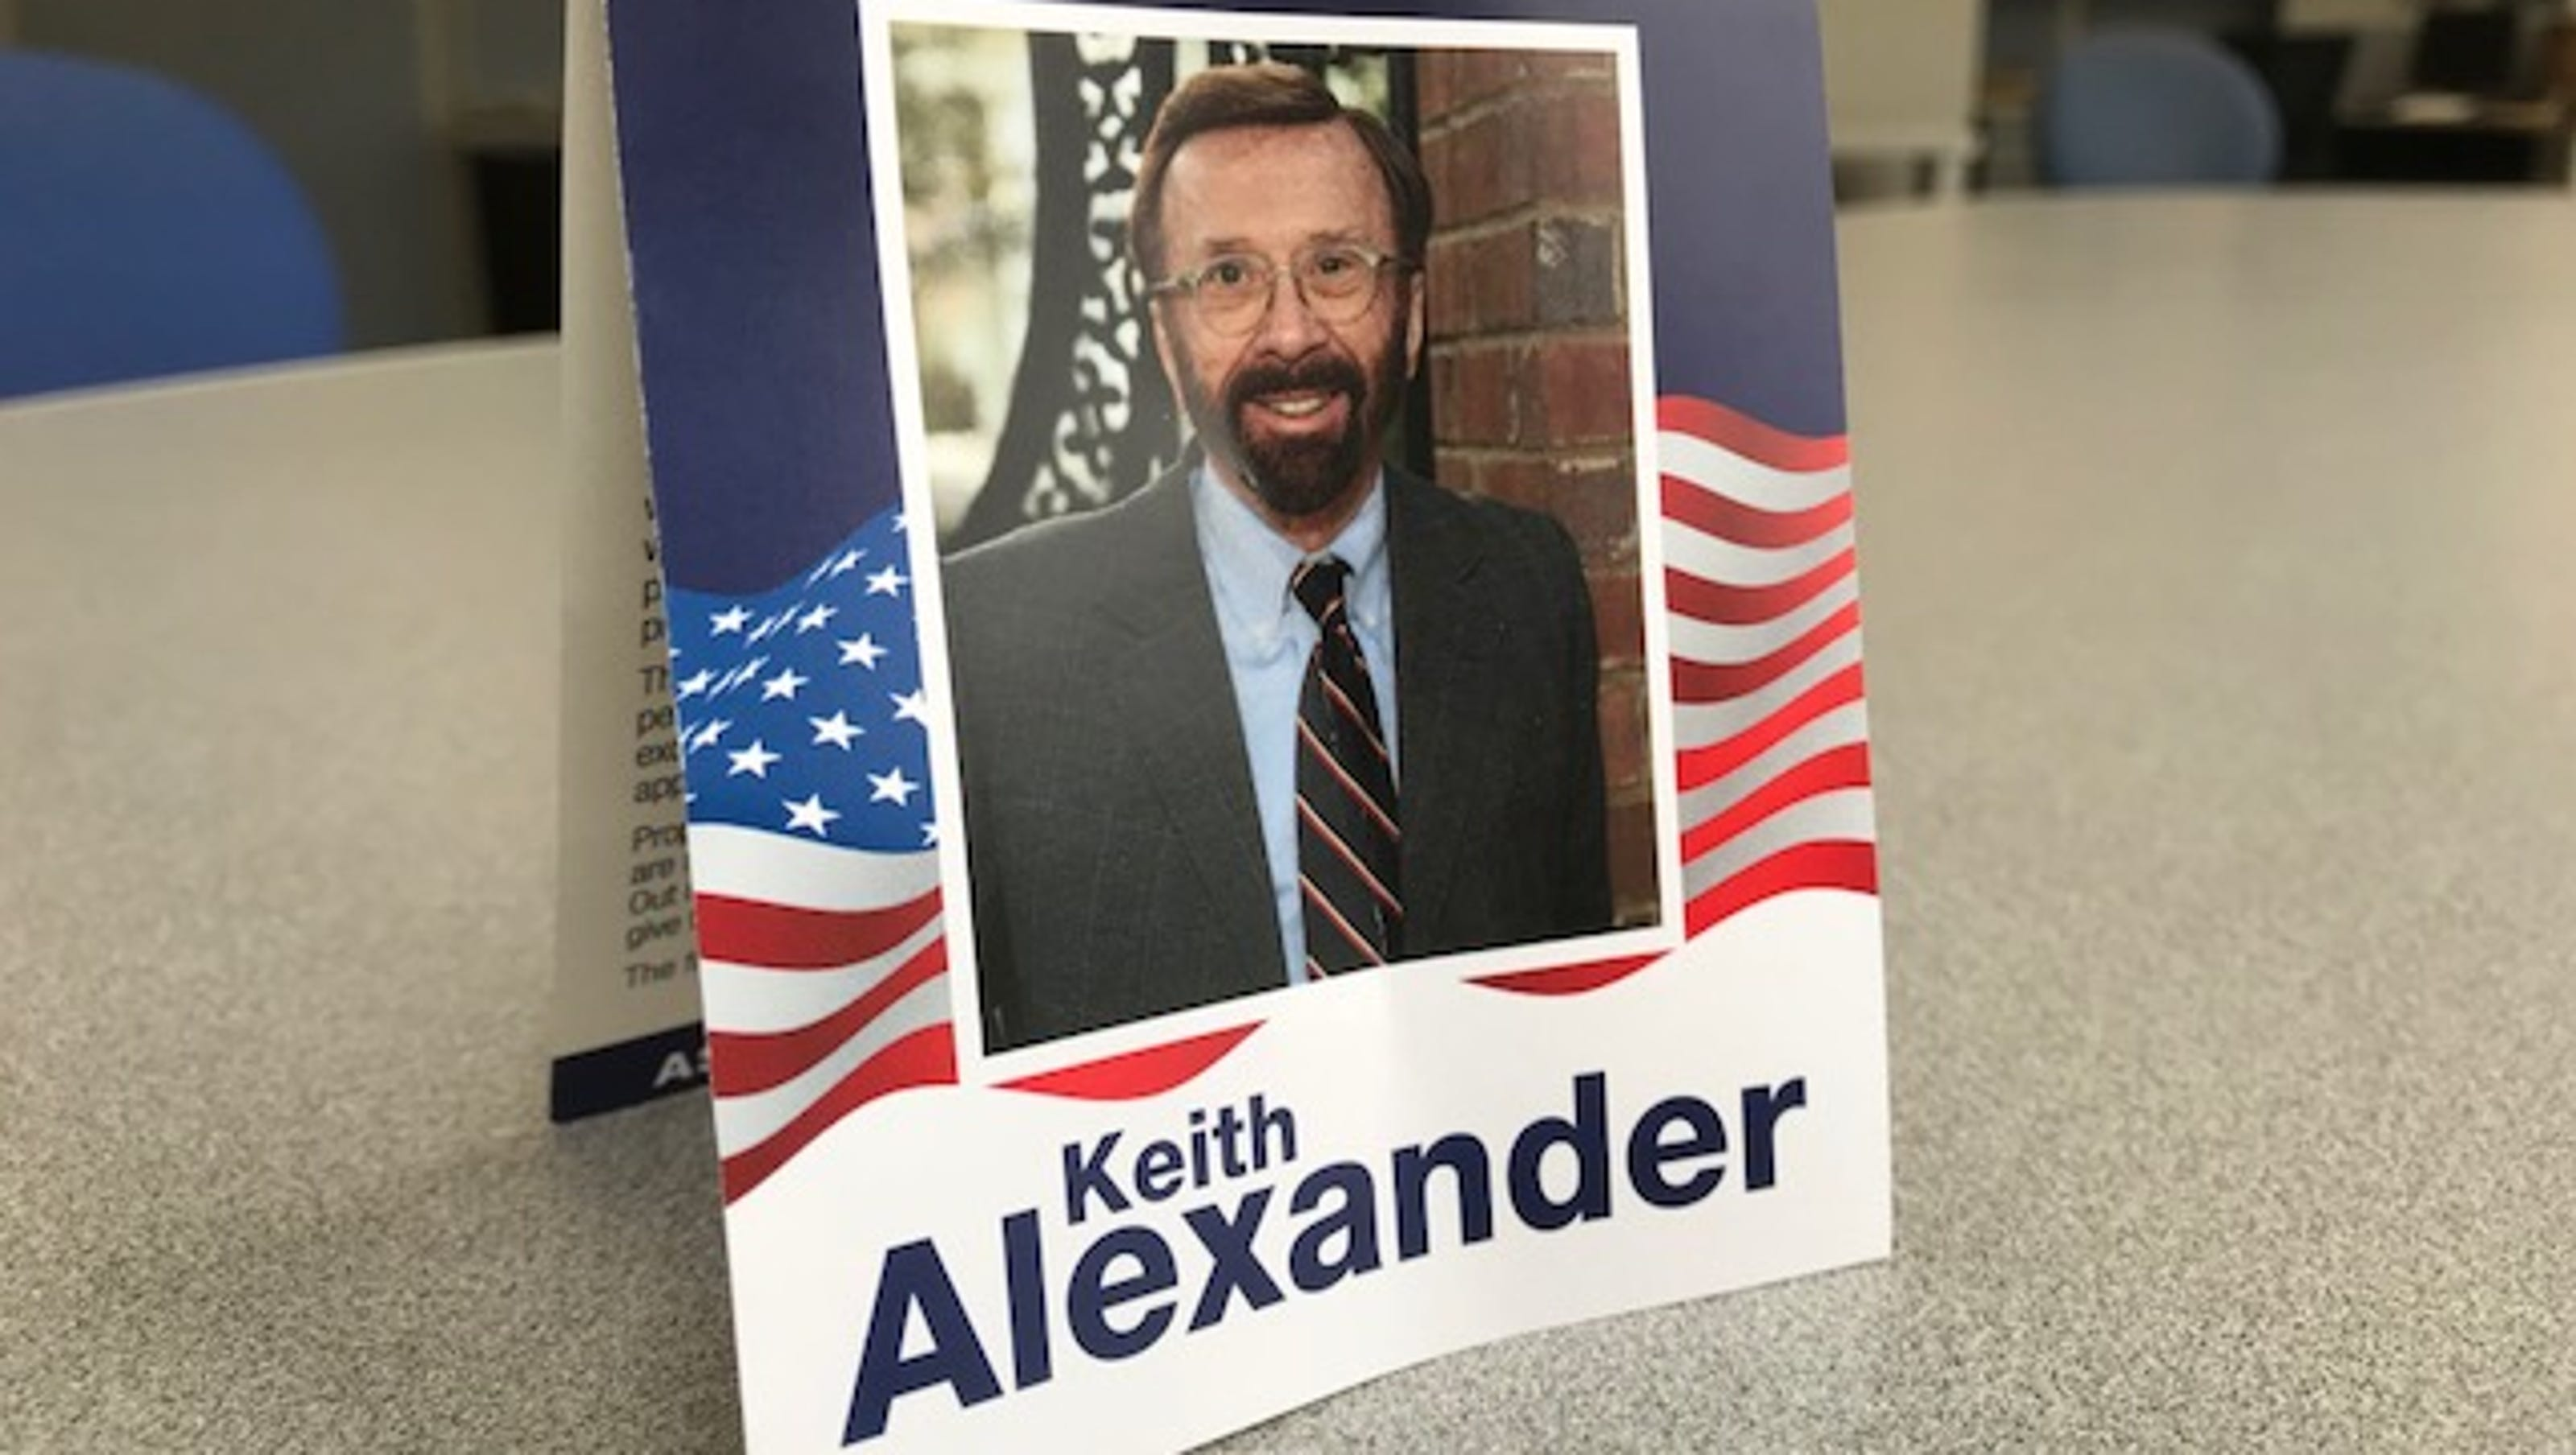 Former Radio Host With White Nationalist Ties Running For Shelby